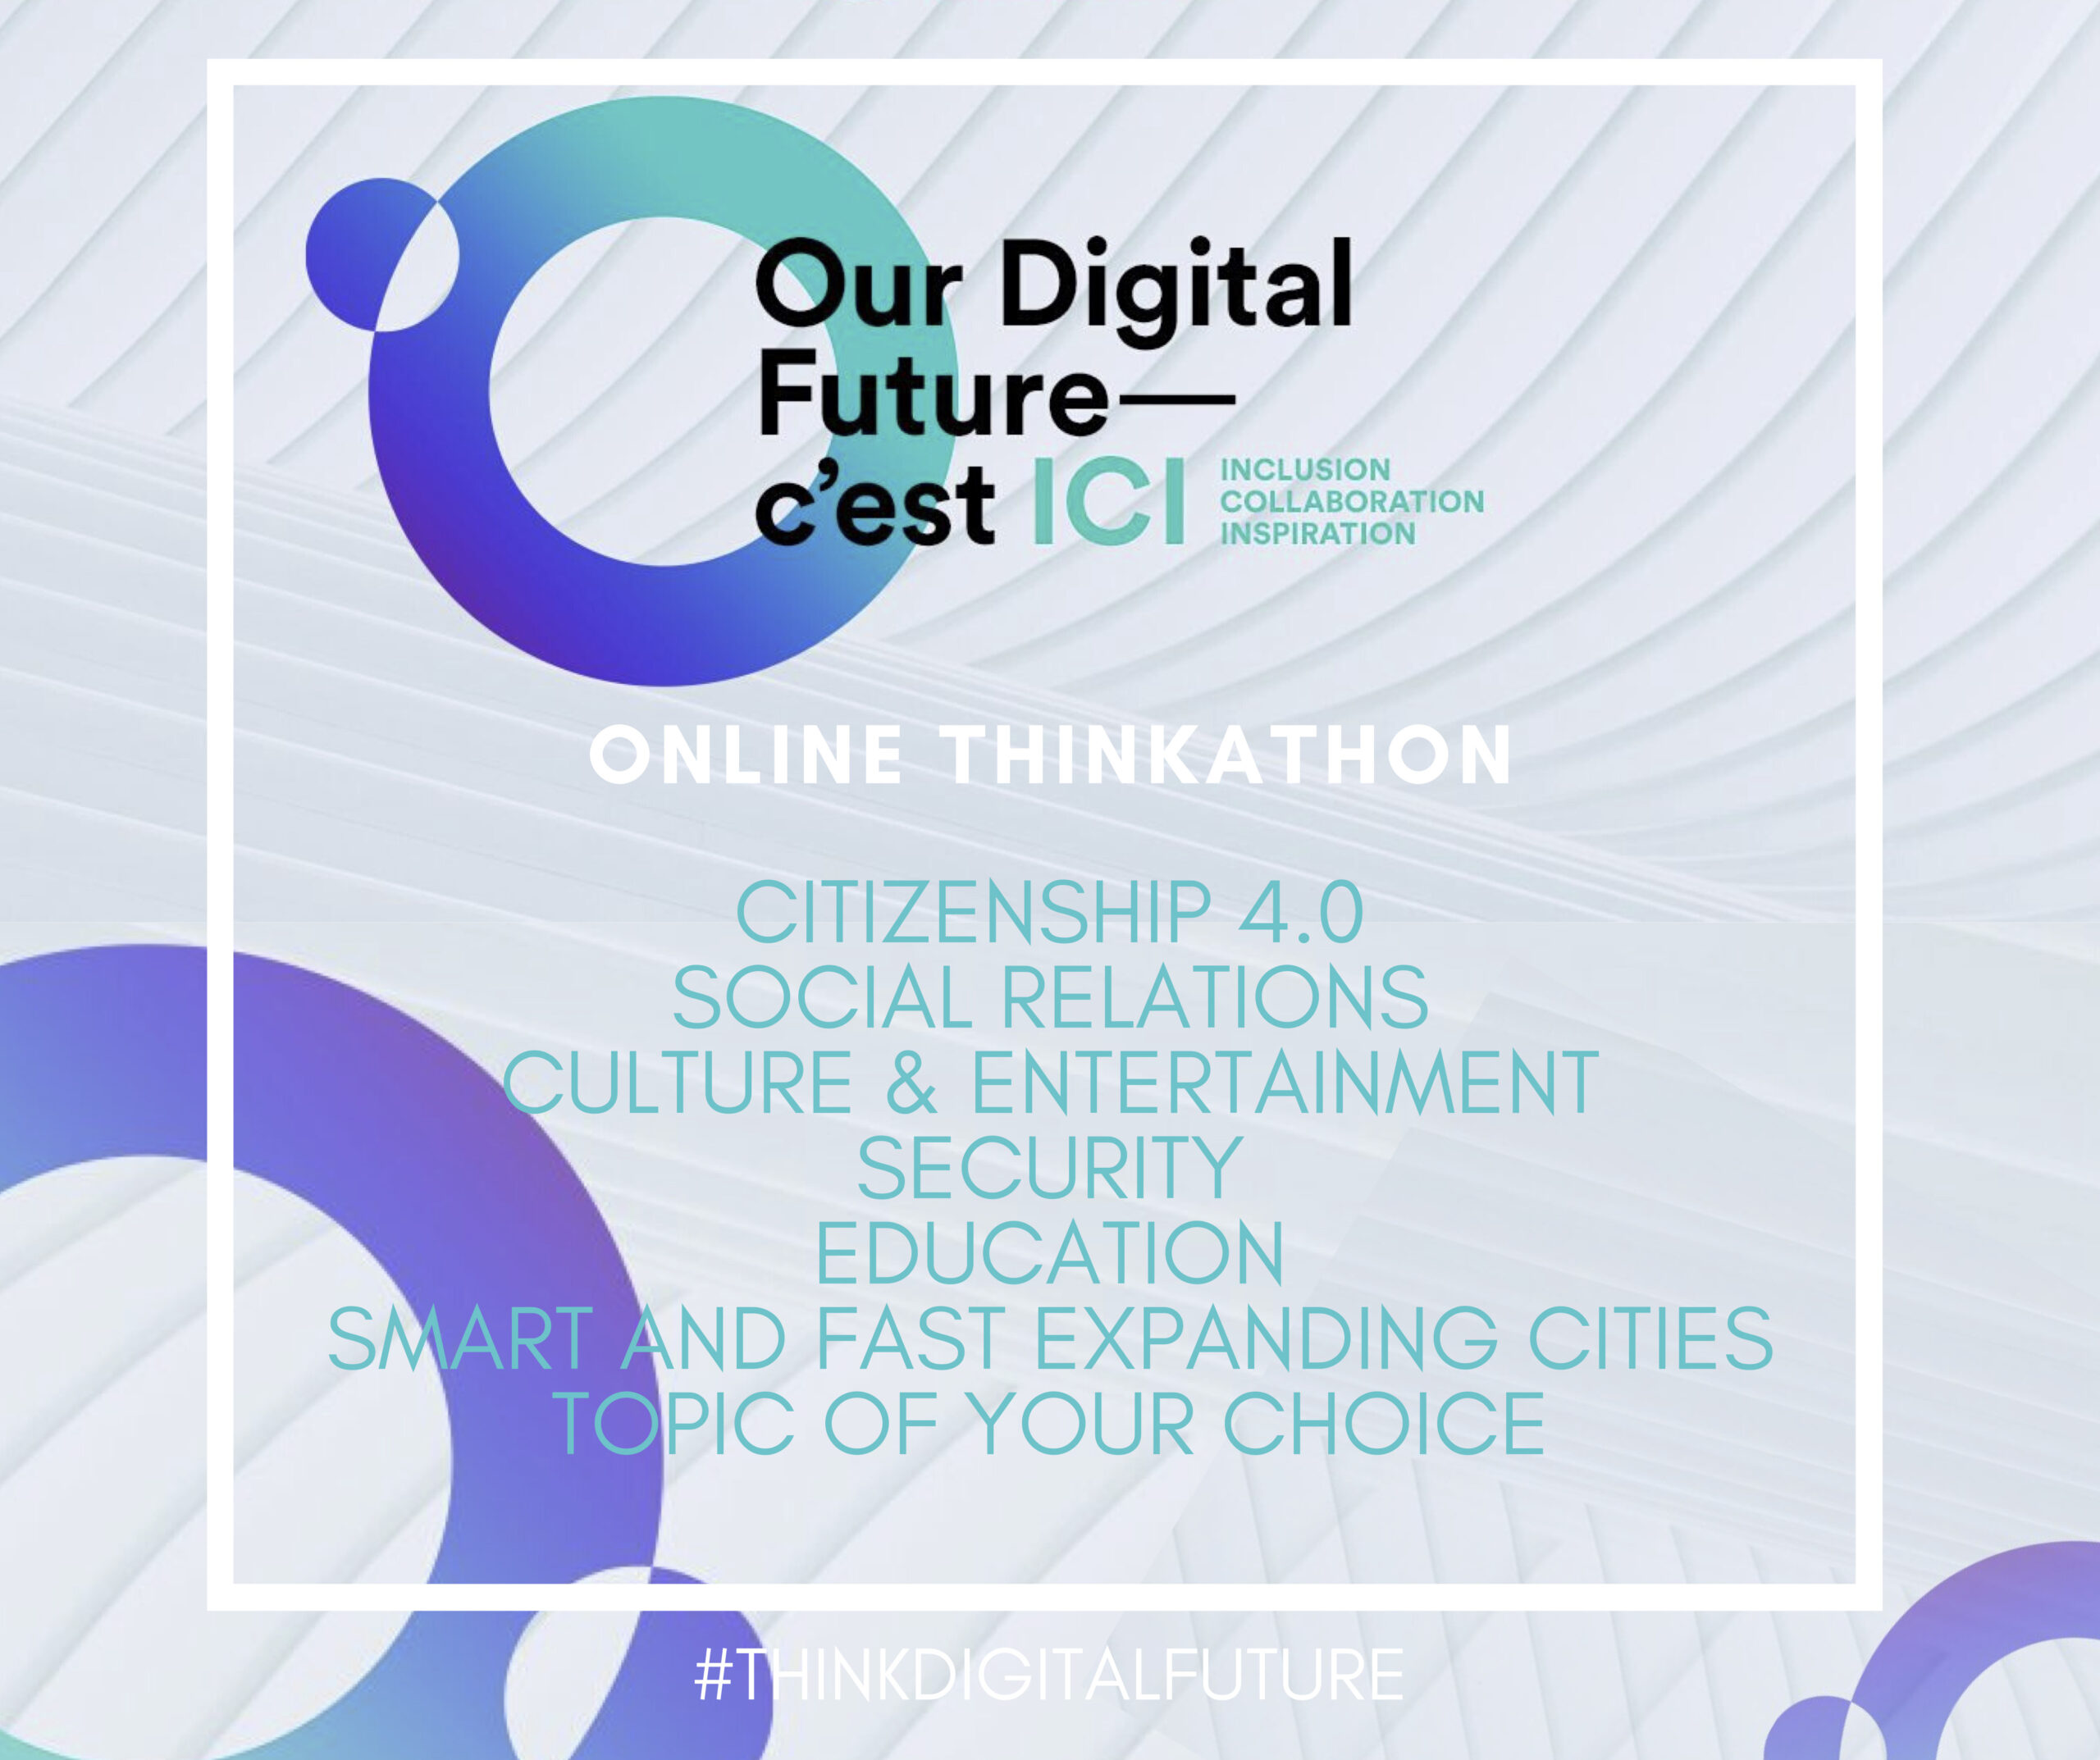 MAKE YOUR VOICE HEARD ON OUR DIGITAL FUTURE.